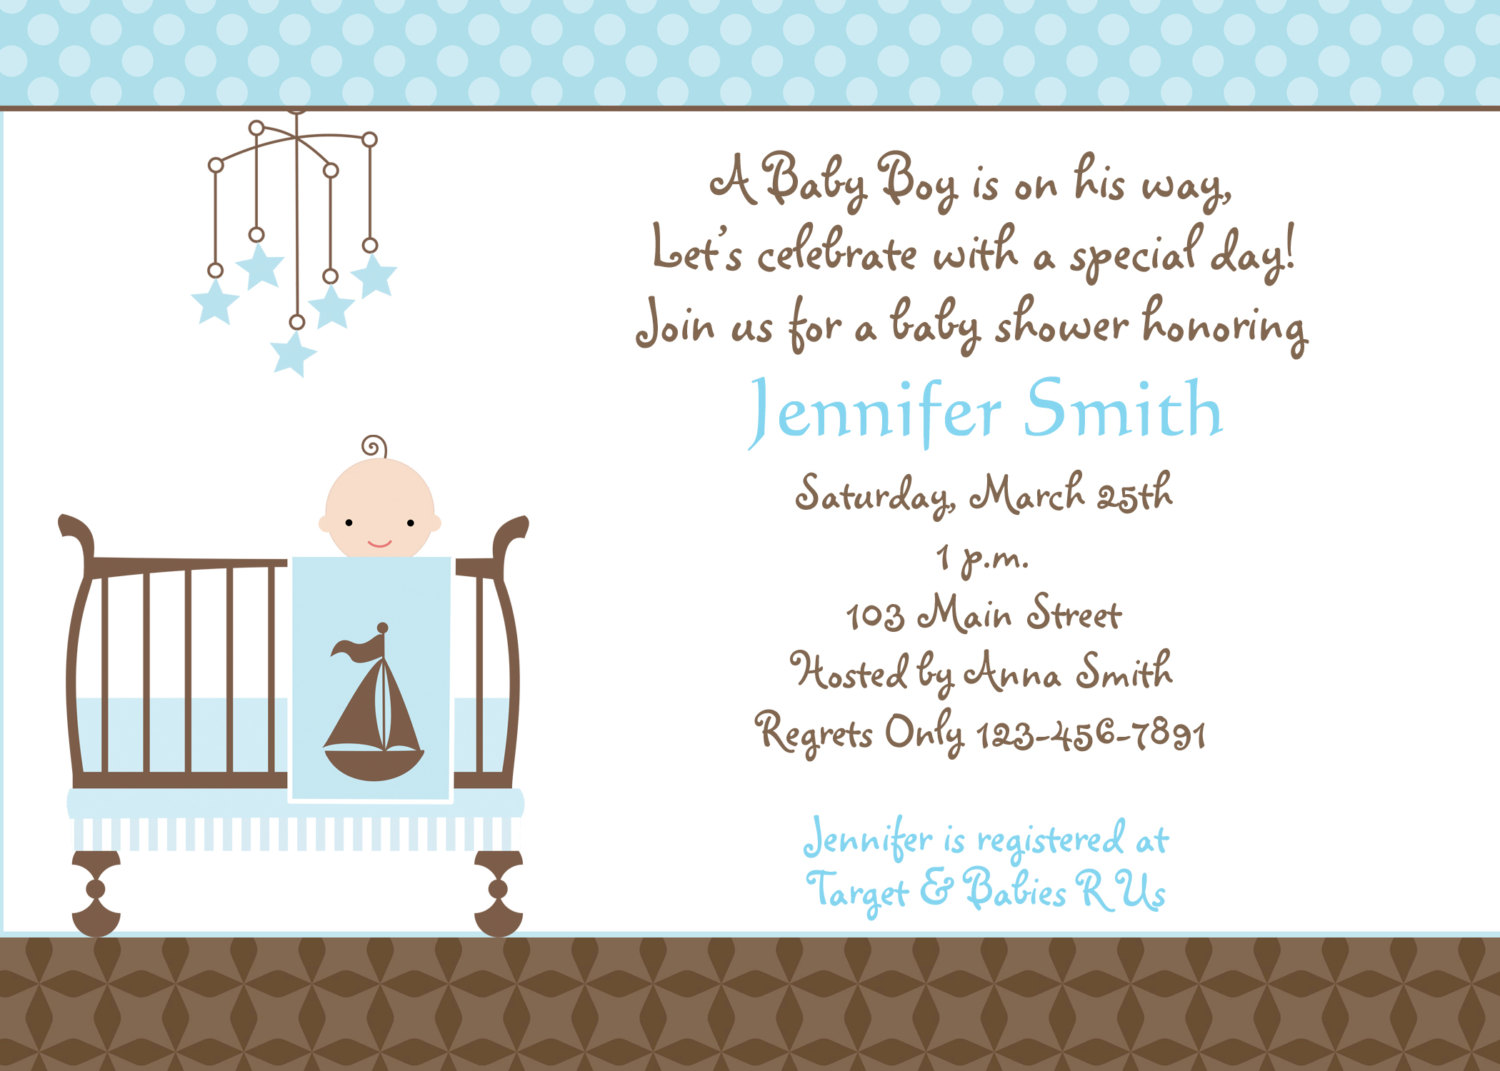 Full Size of Baby Shower:delightful Baby Shower Invitation Wording Picture Designs Baby Shower Invitation Wording Outstanding Baby Shower Invite Wording Boy Which Can Be Used As Free Baby Shower Invitations Outstanding Baby Shower Invite Wording Boy Which Can Be Used As Free